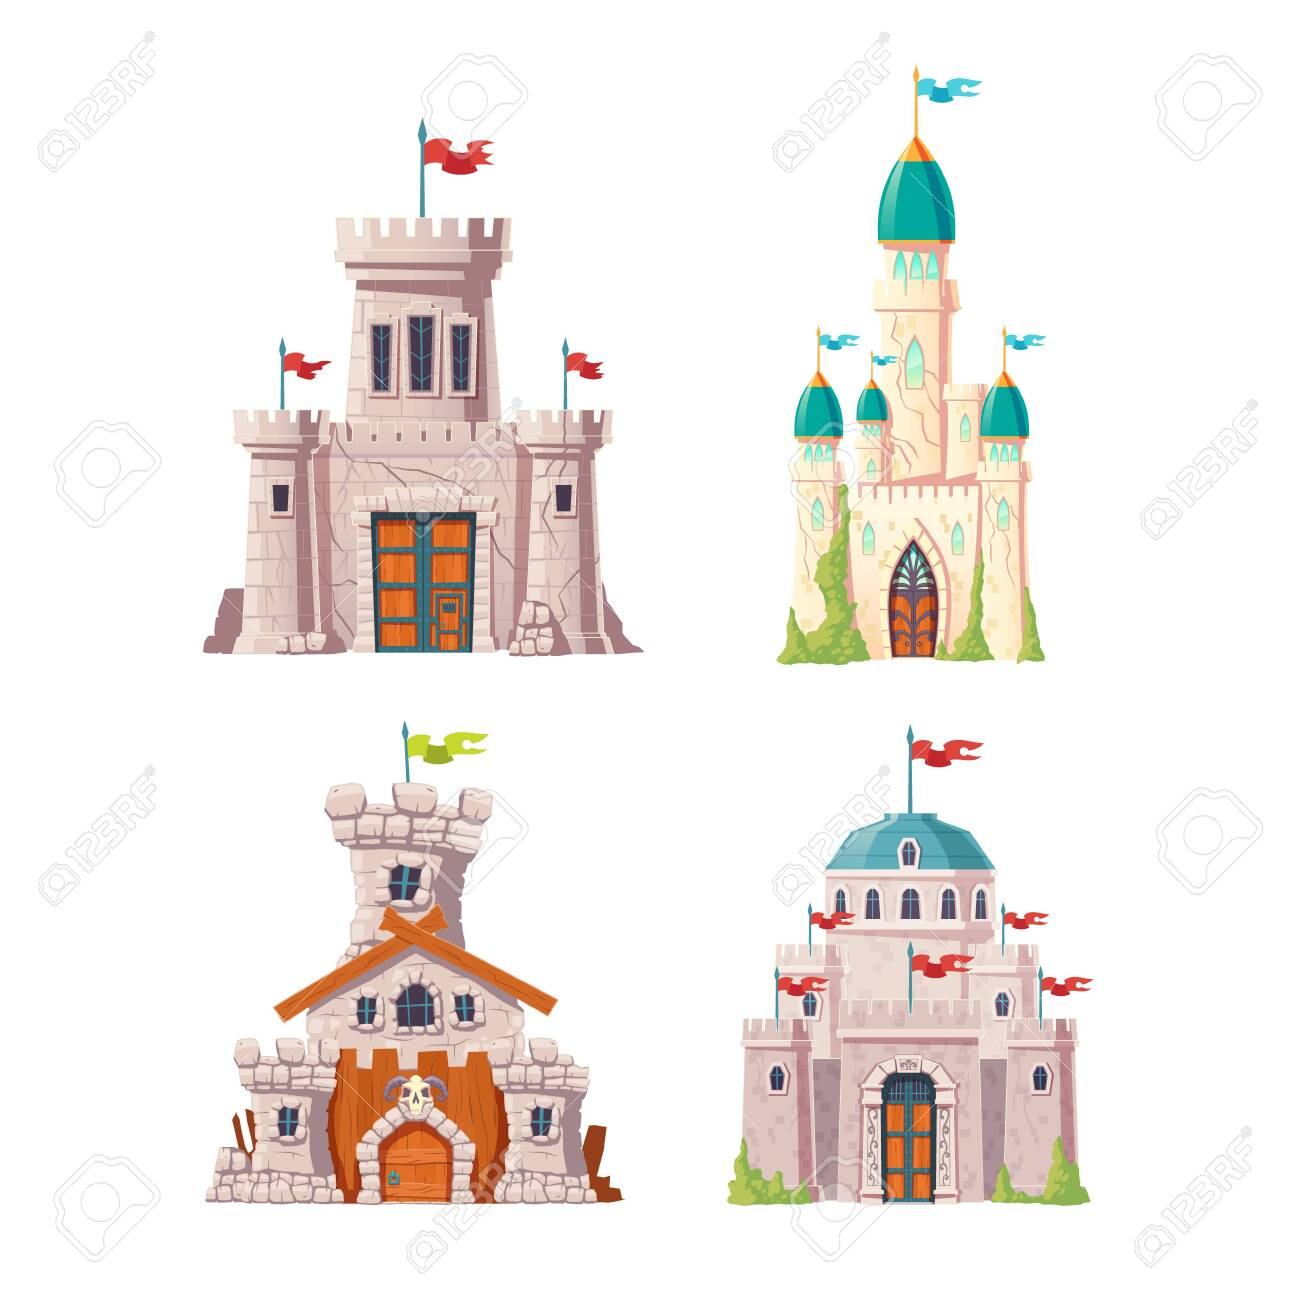 Fairytale castles, fantasy fortresses set. Medieval citadels with stone watchtowers, flags on spires, ivy growing on cracked walls. Abandoned stronghold ruins isolated, cartoon vector illustrations - 137886069